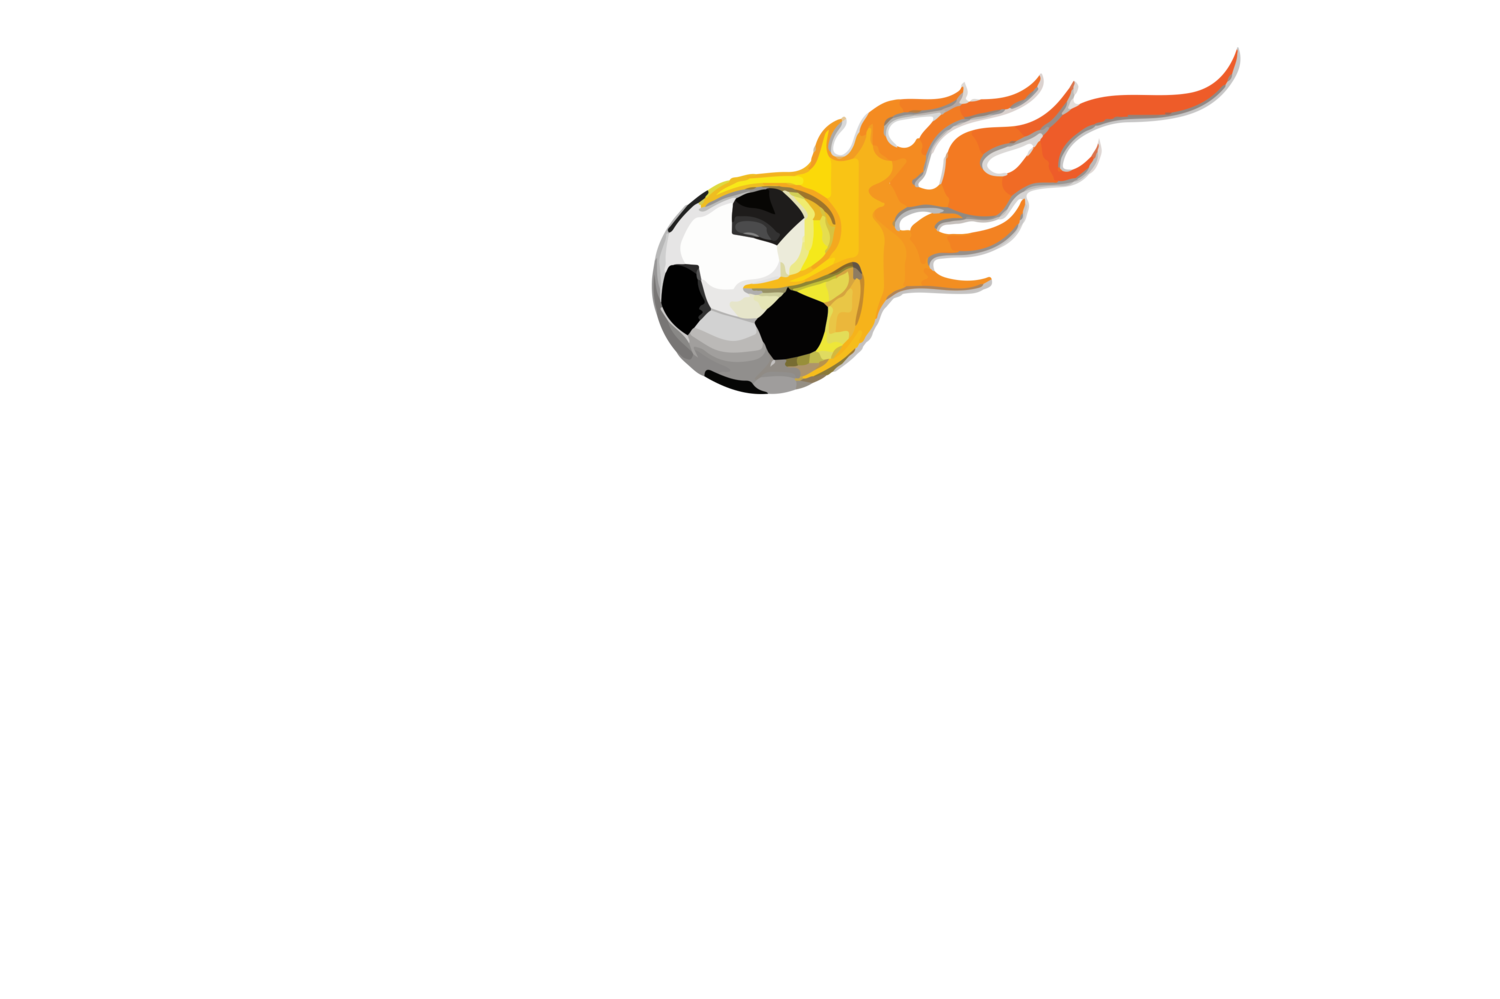 Hotshots LDN| Fun football classes for children aged 4-12 years old